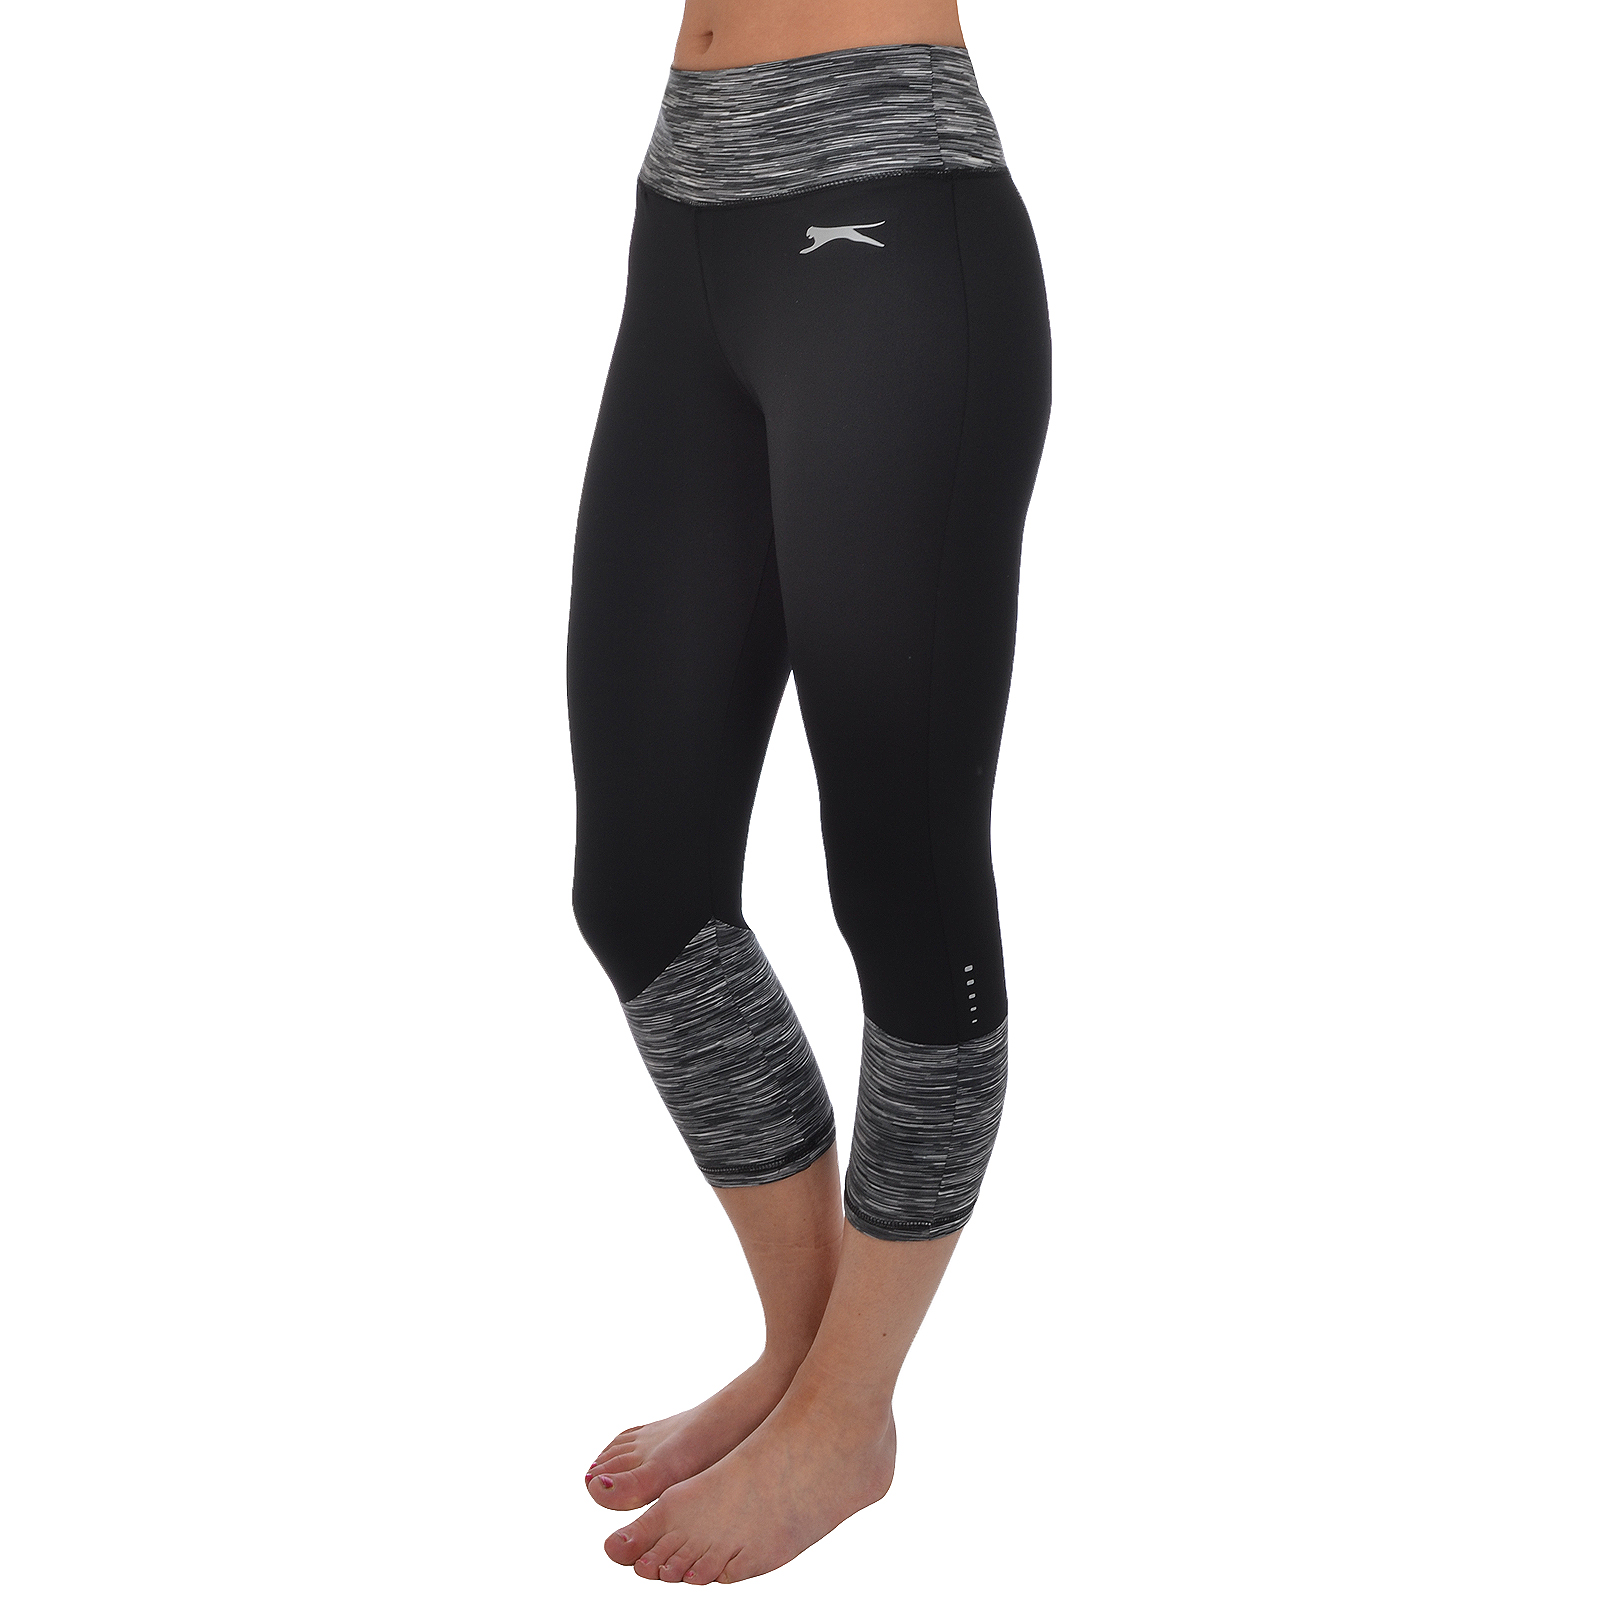 Shop Under Armour Women's Running FREE SHIPPING available in.